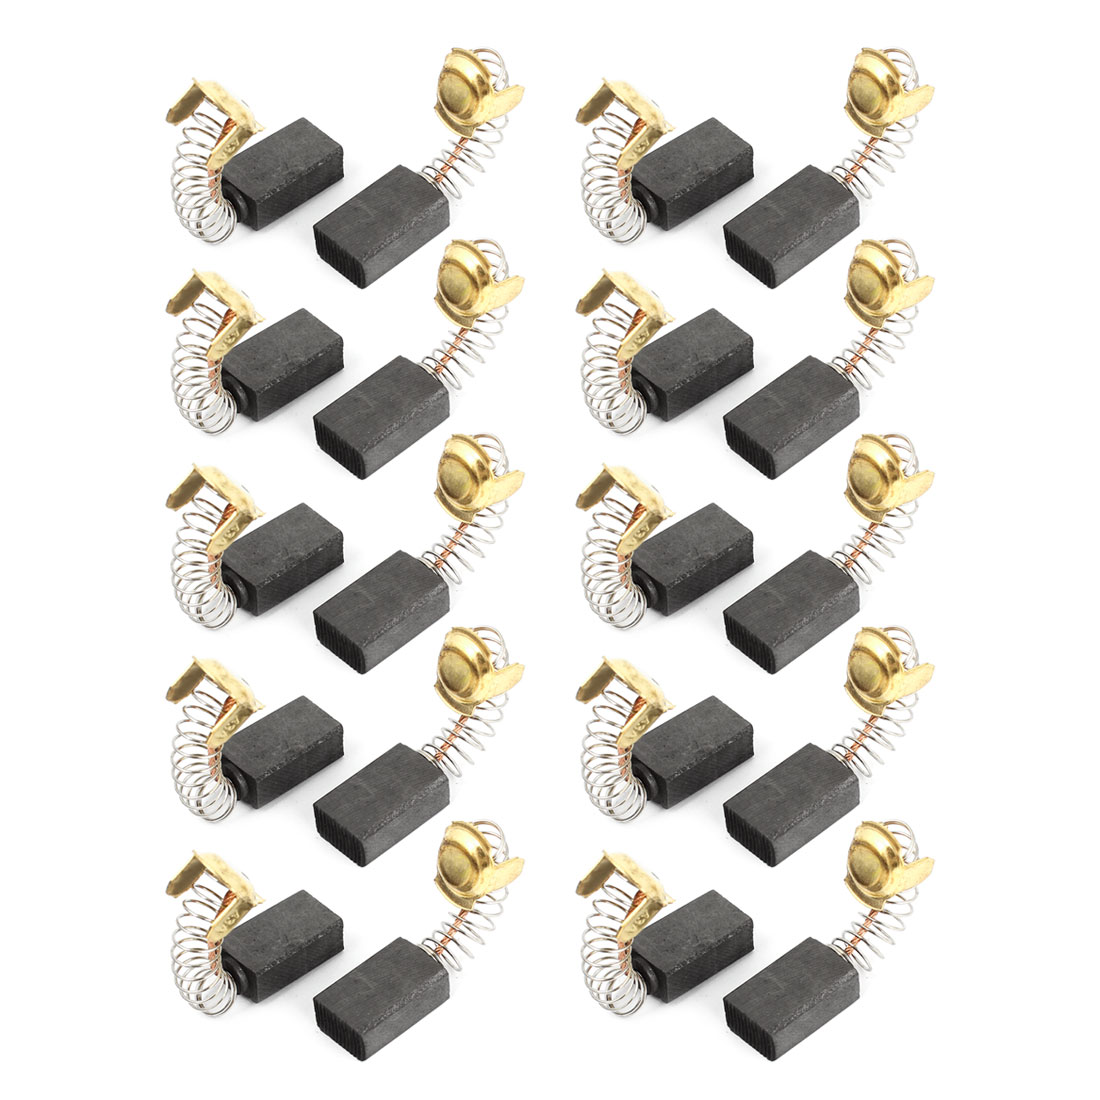 20 Pcs Spare Part Spring Type Electric Drill Motor 18mm x 11mm x 7mm Carbon Brushes